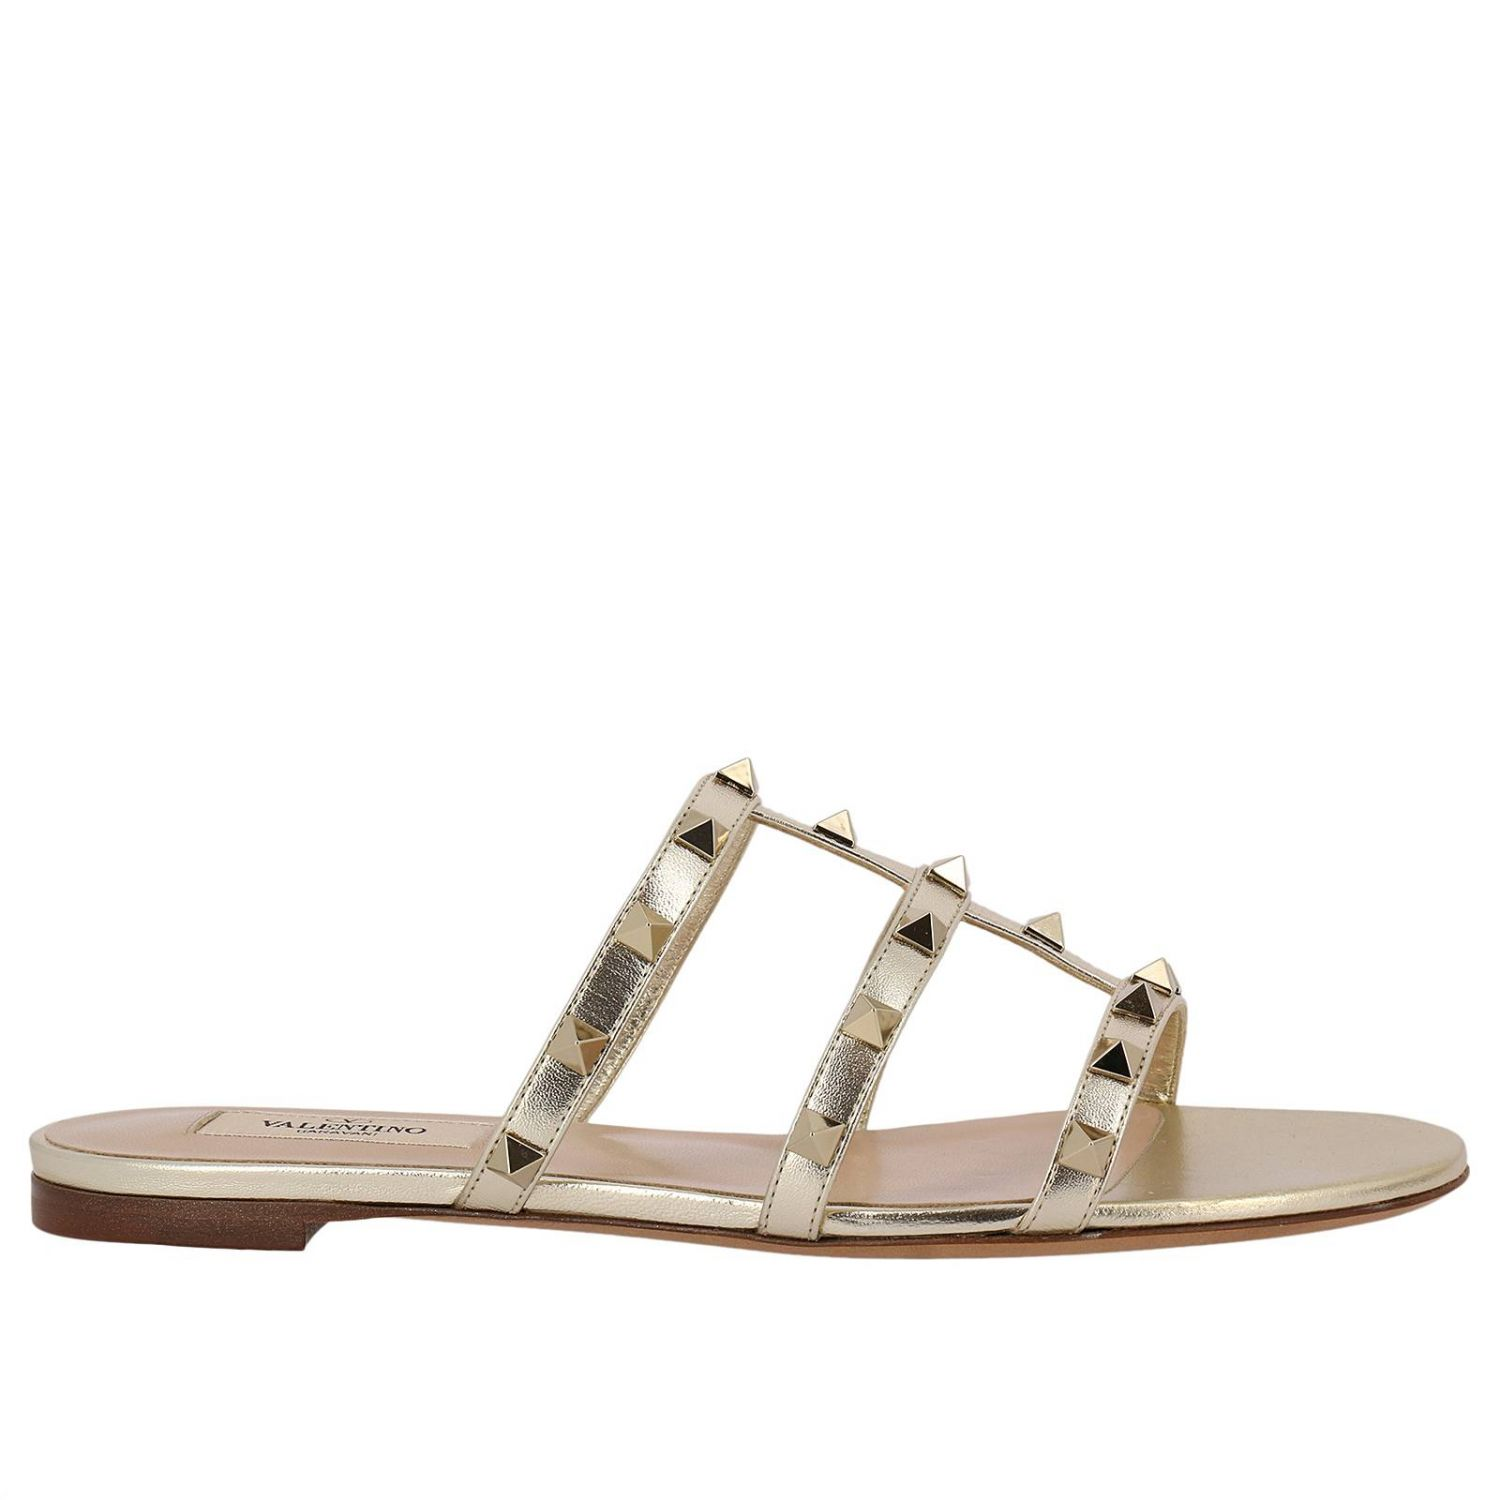 Flat Sandals Valentino Rockstud Sandal Flats In Genuine Laminated Leather With Metal Studs 8287285